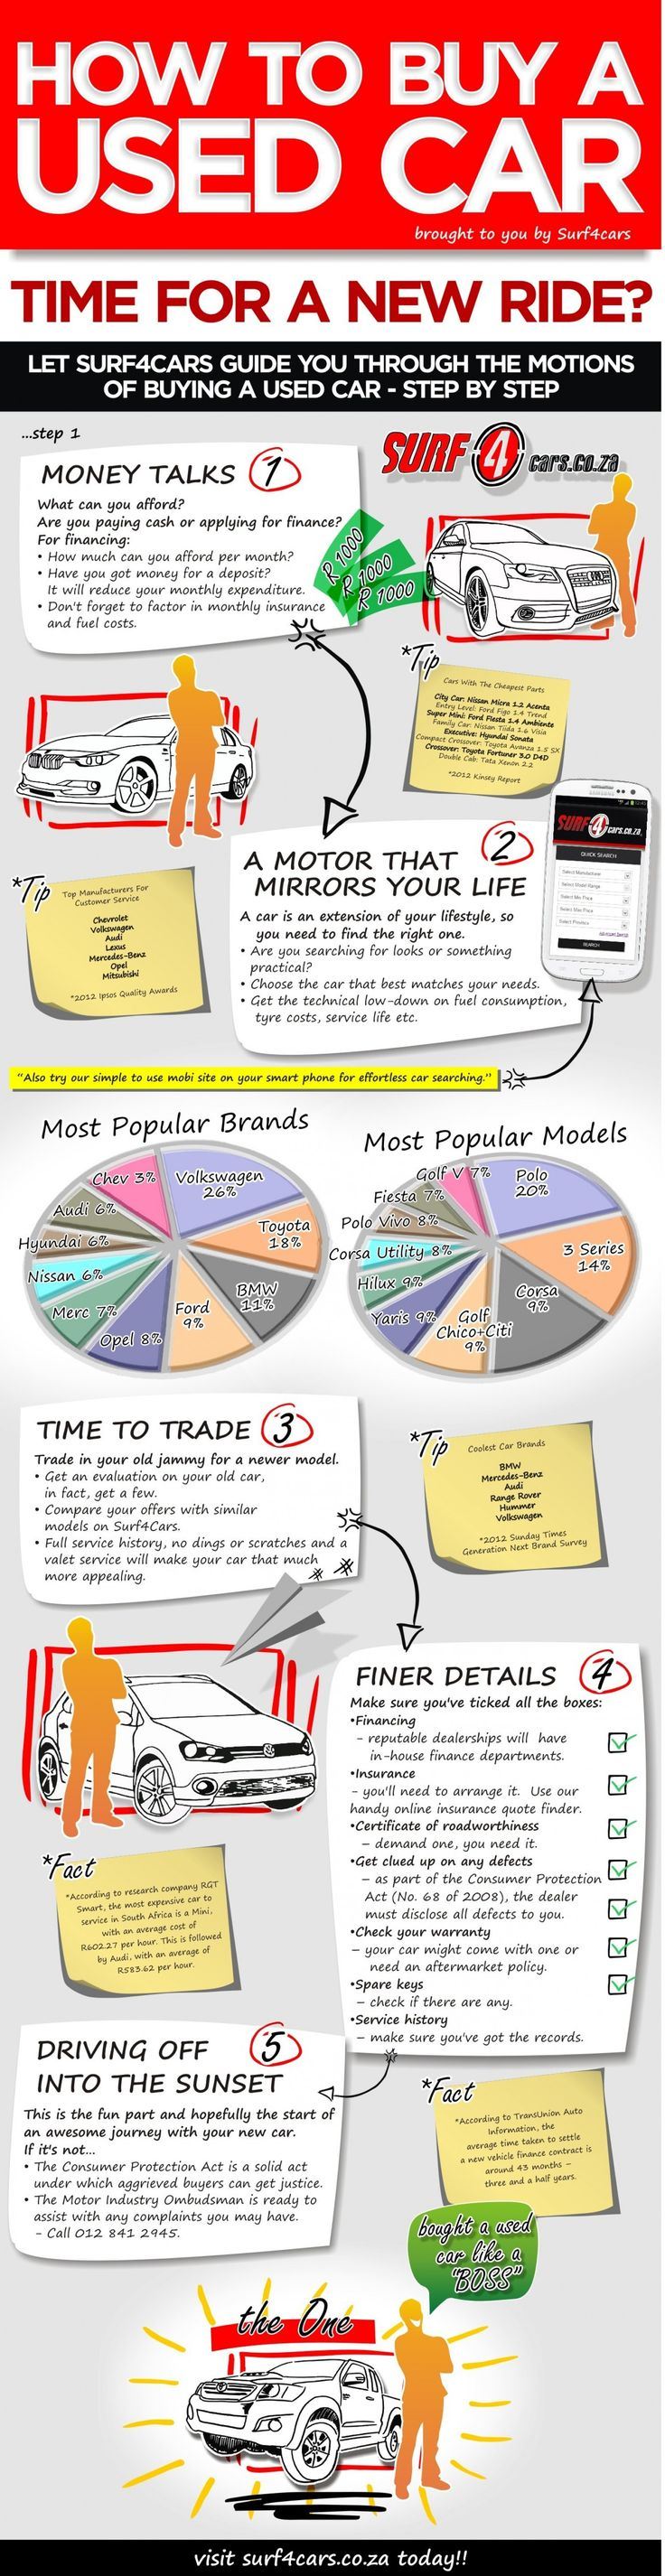 How To Buy A Used Car | Infographic | Surf4cars #infographic